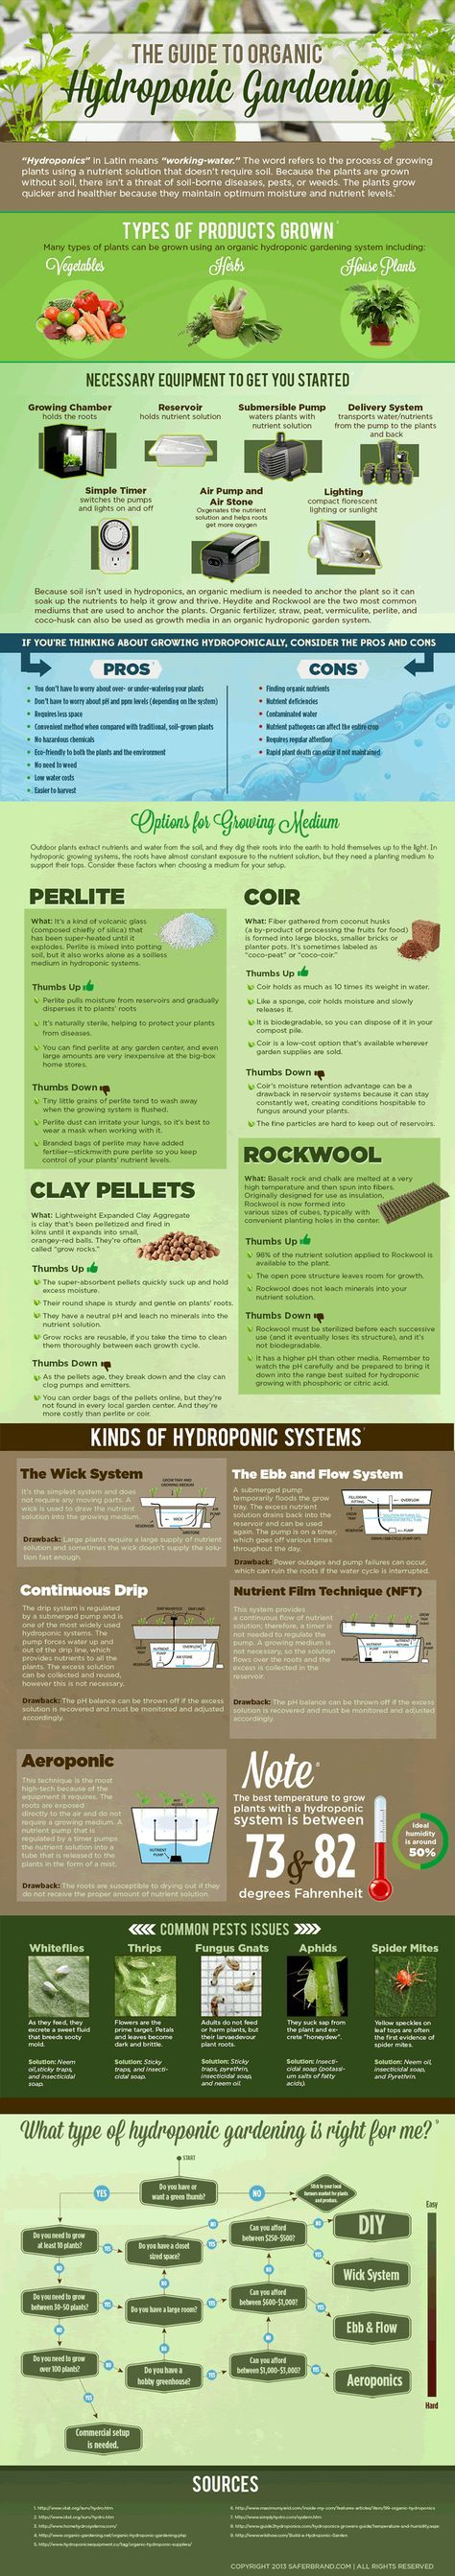 Guide To Hydroponic Gardening   #infographic #Hydroponic #Gardening #Farming